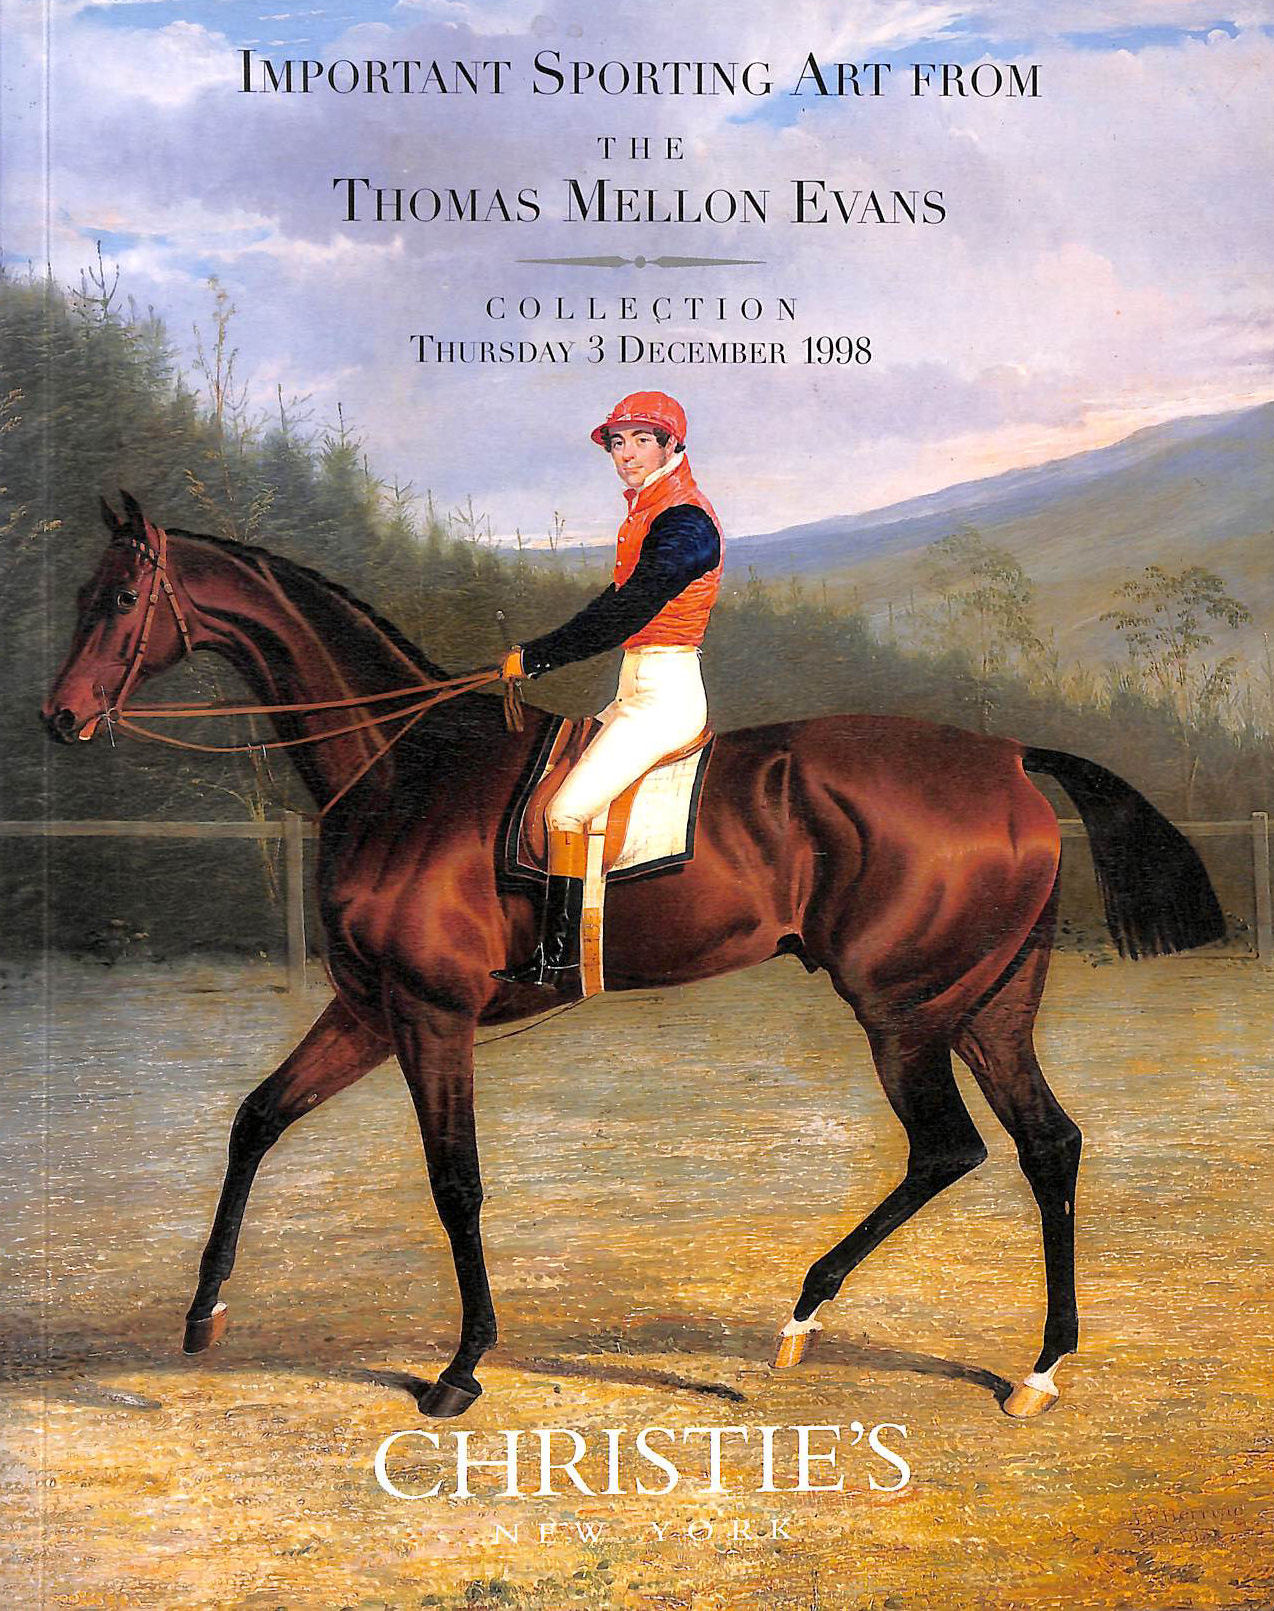 Image for Important Sporting Art from the Thomas Mellon Evans Collection (Christie's New York 12/3/1998 Sale #8944)